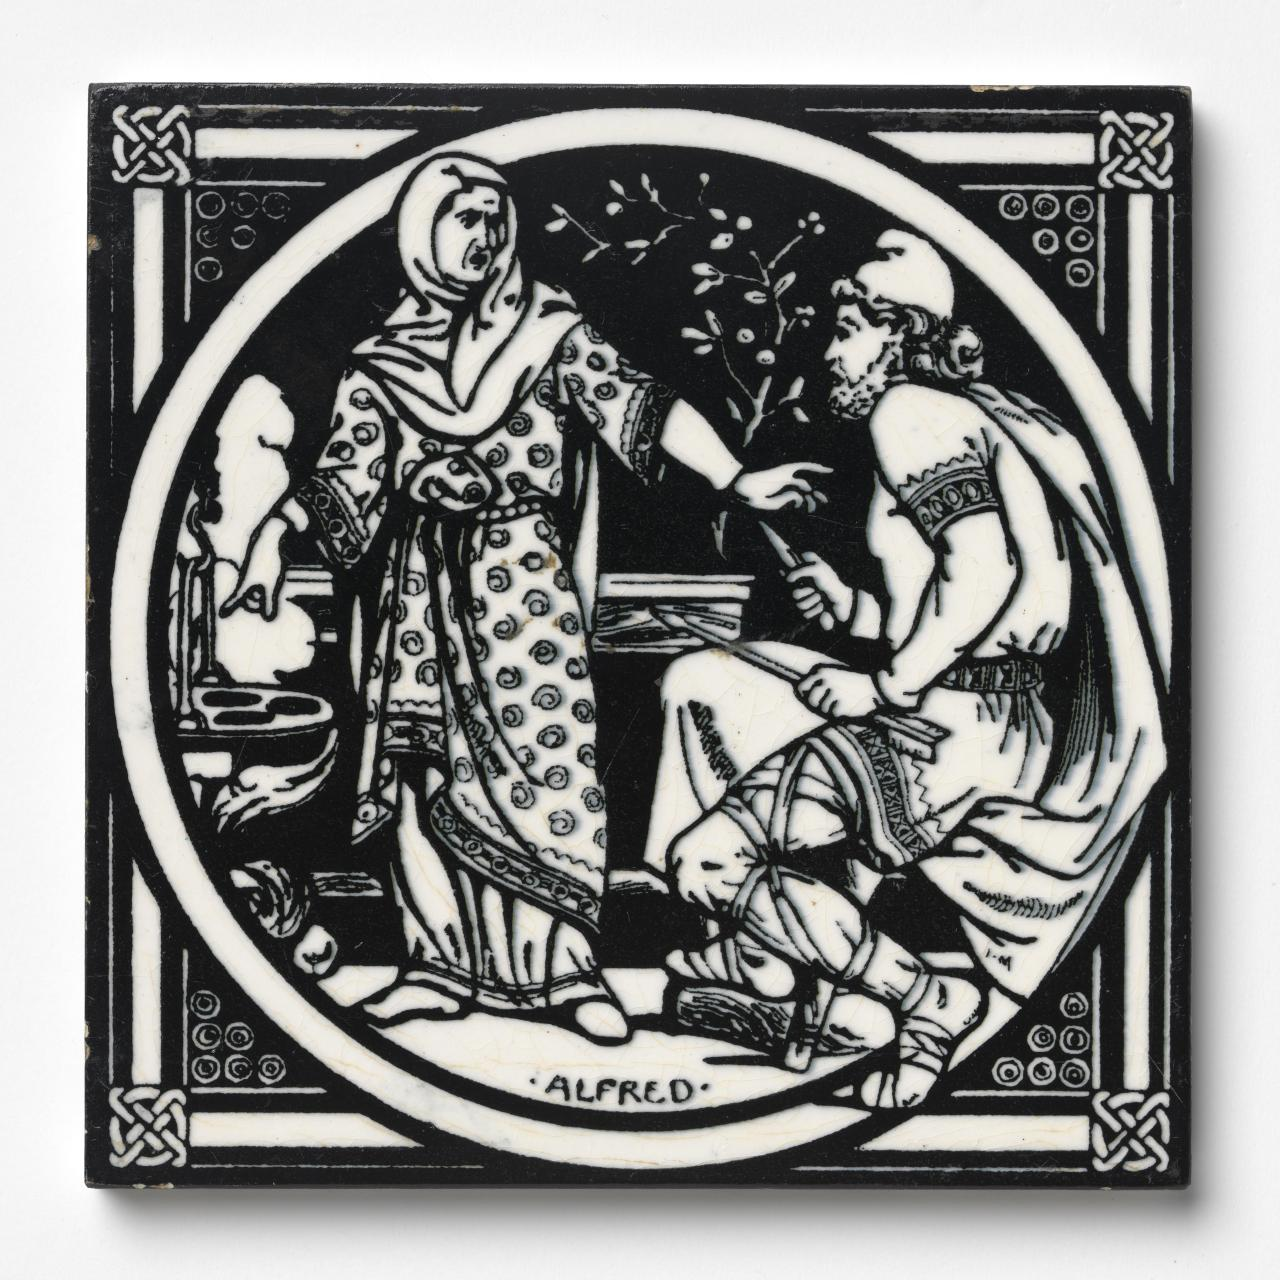 Alfred in the Danish camp, tile